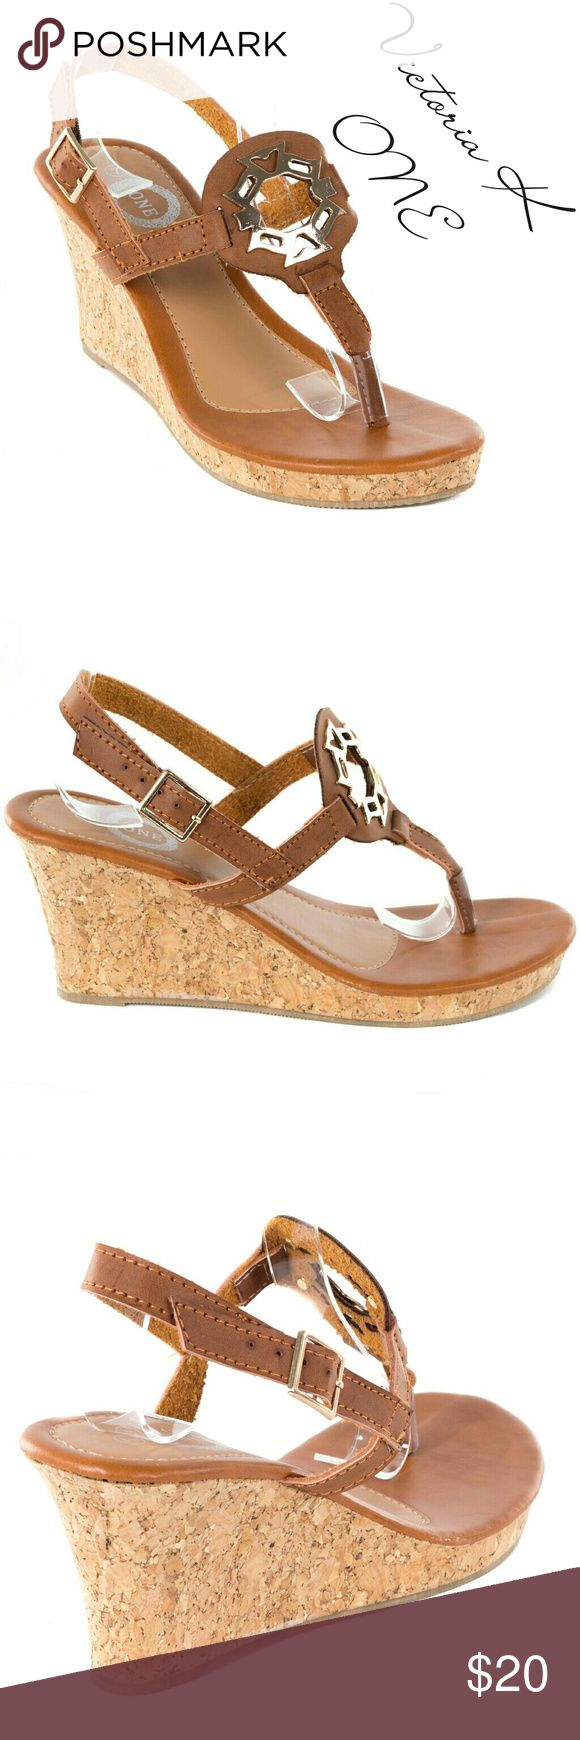 """Women Wedge Thong Sandals HS-2086, Camel Brand new Victoria K open toe thong slingback sandals in PU leather with a beautiful metal symbol in the front. From the ONE collectuon. Approx 2.5"""" platform, cushioned sole, very comfortable. Perfect for a summer vacation! A true statement in ladies shoes fashion! If you are between sizes, order up - they run a tad tight. Tory K  Shoes Sandals"""